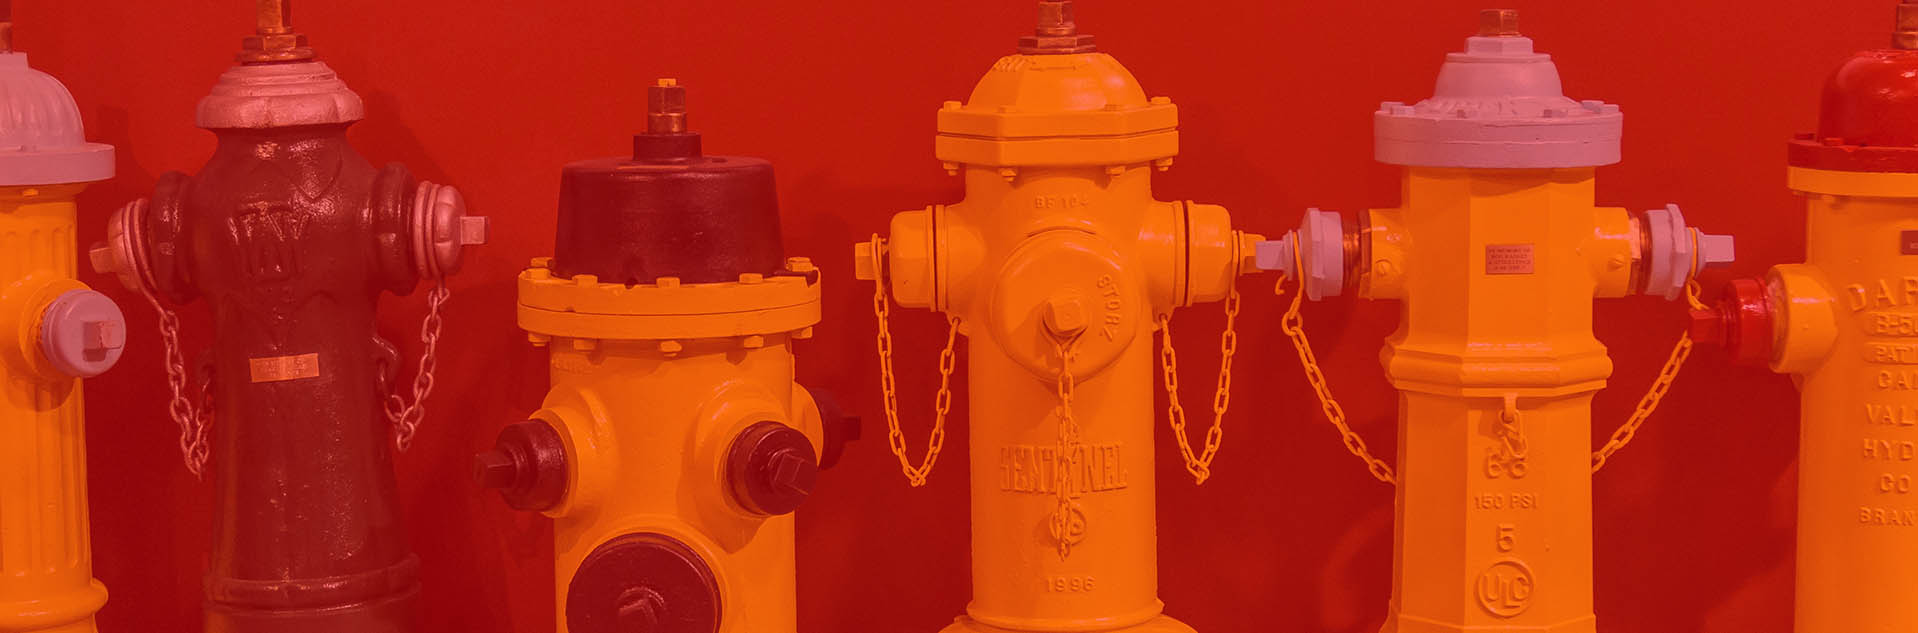 Canadian Fire Fighters Museum Fire Hydrants